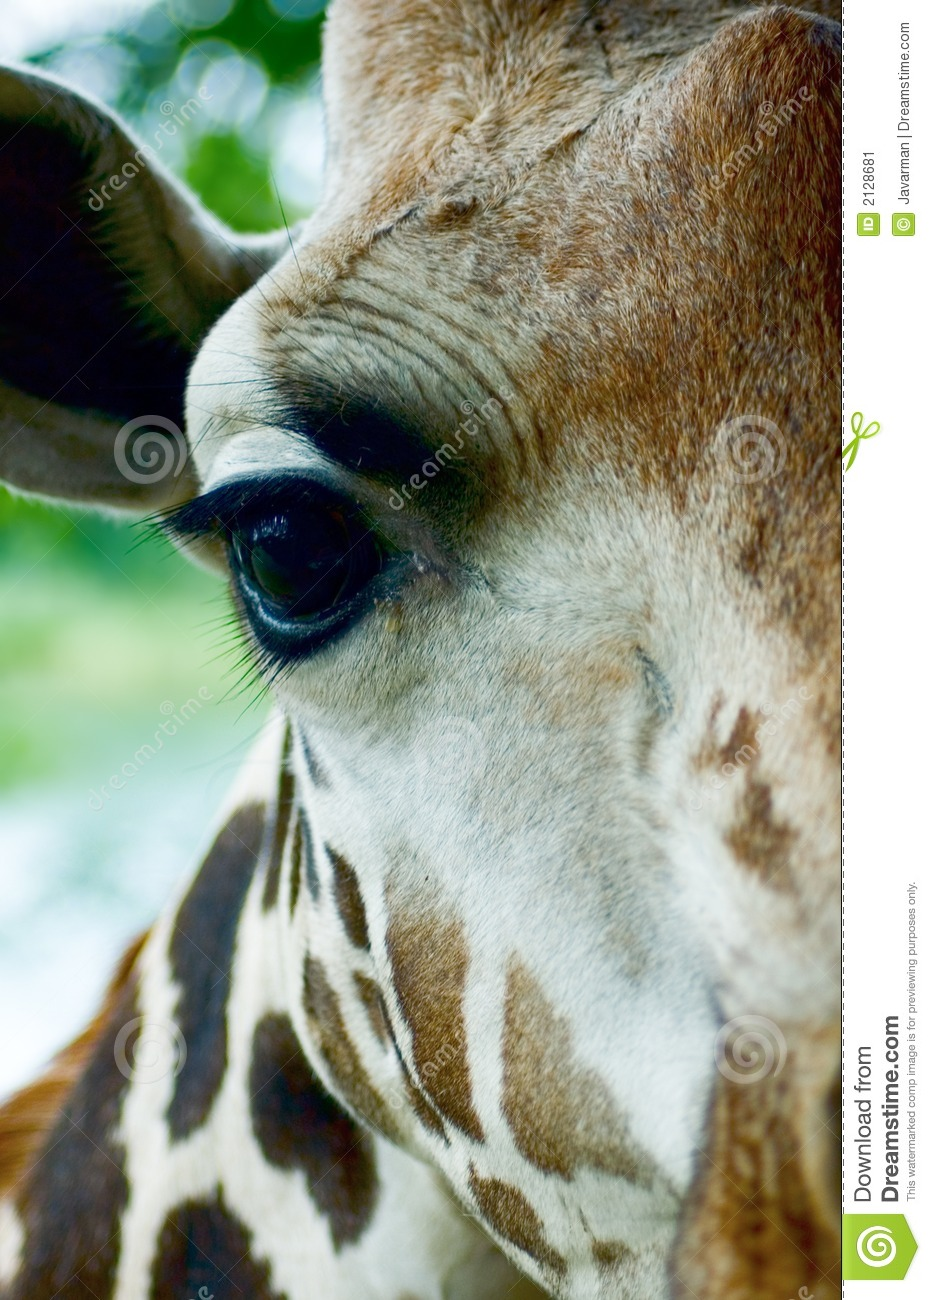 Giraffe head close up - photo#15